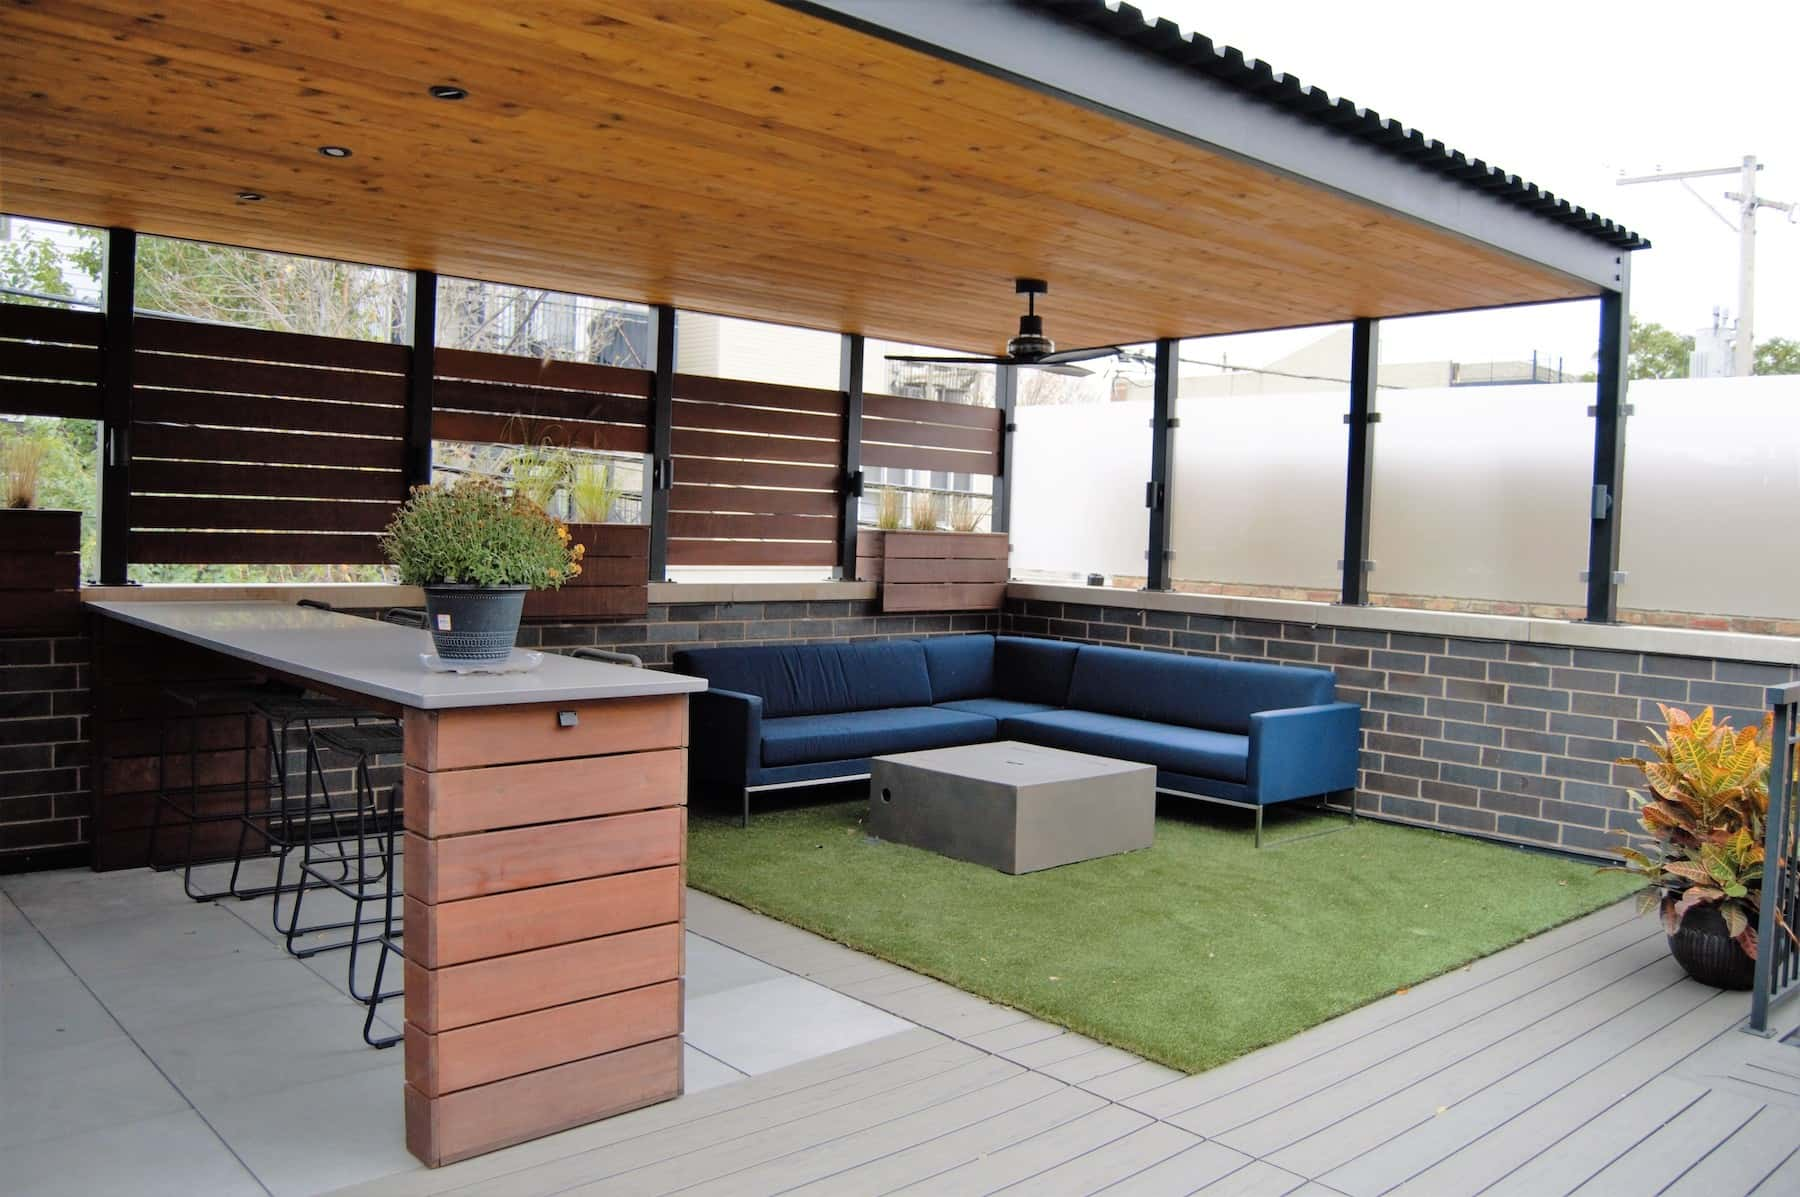 Garage Rooftop Decking Turf Outdoor Furniture Privacy Fencing Bar Seating Lake View Chicago